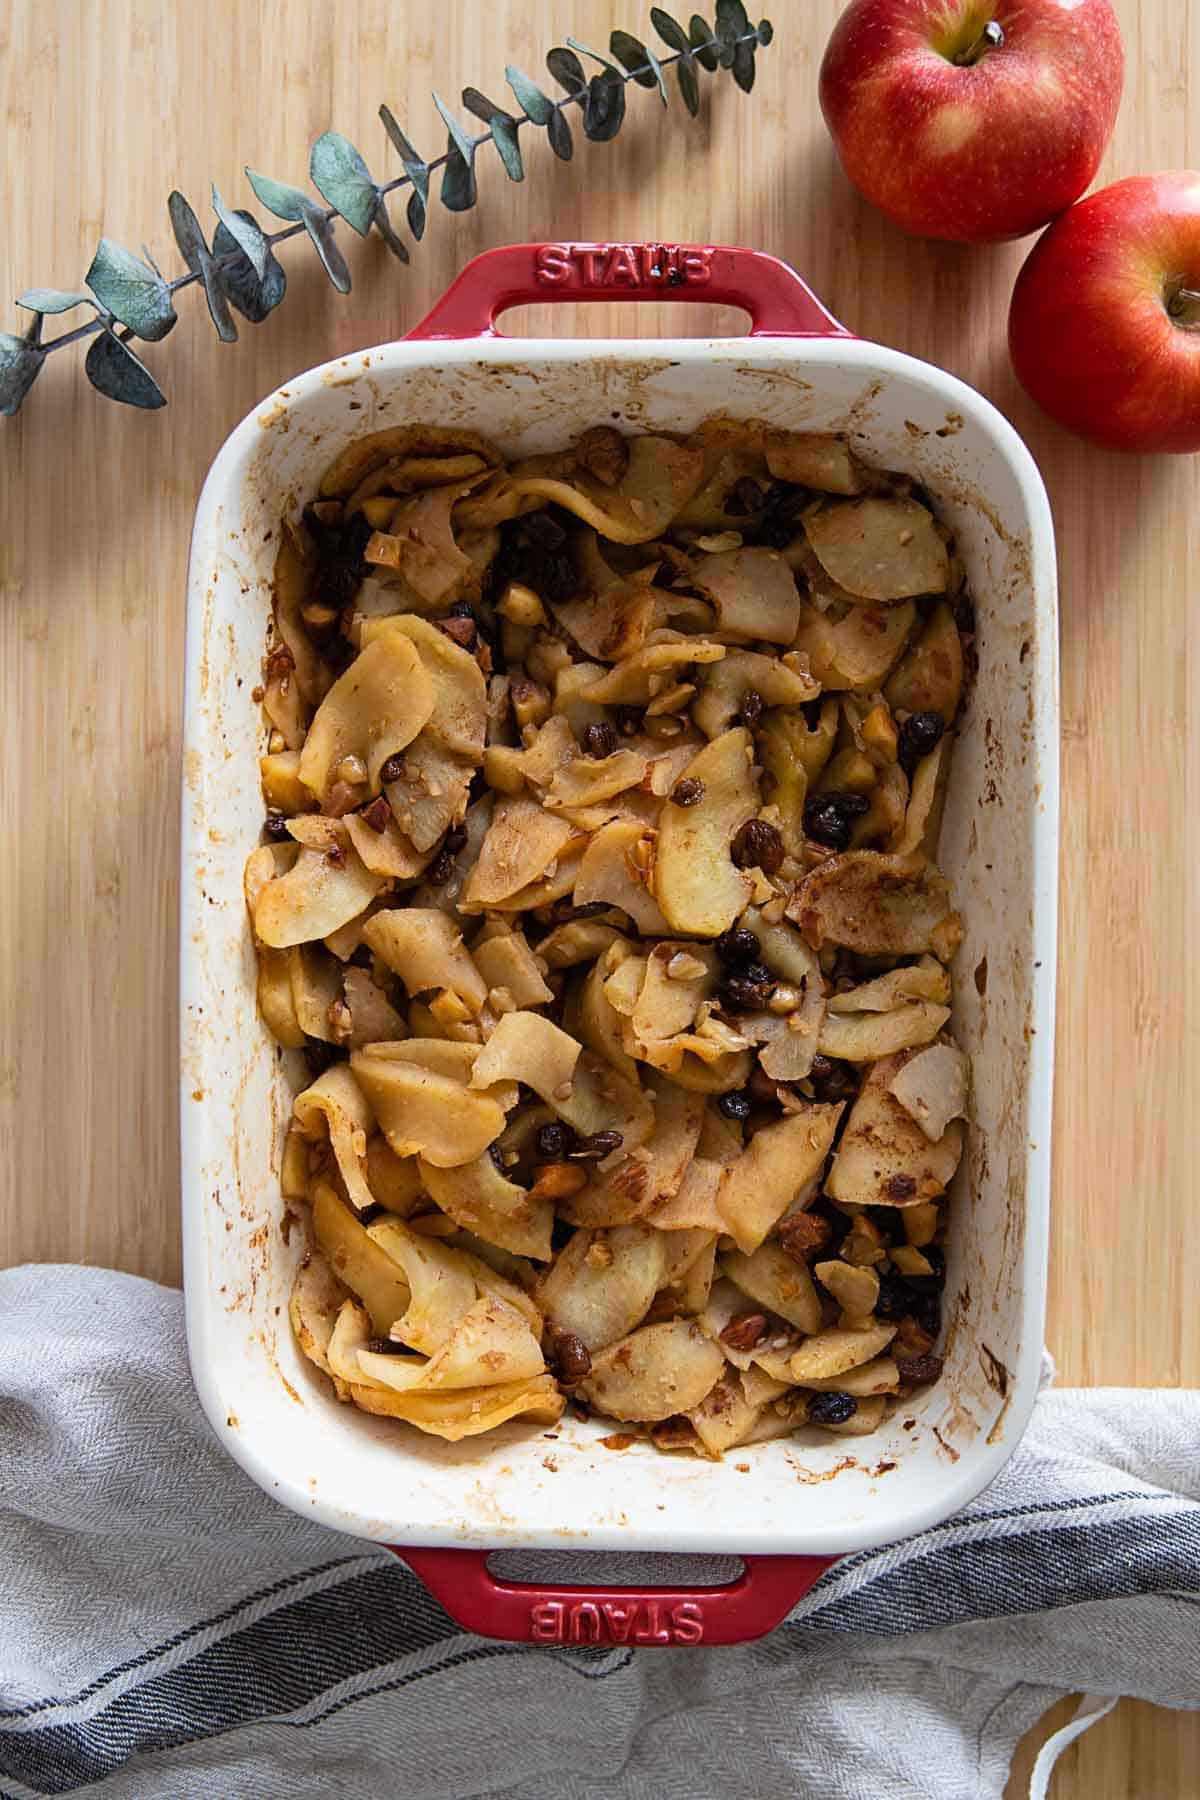 Sliced baked apples in a red baking dish.